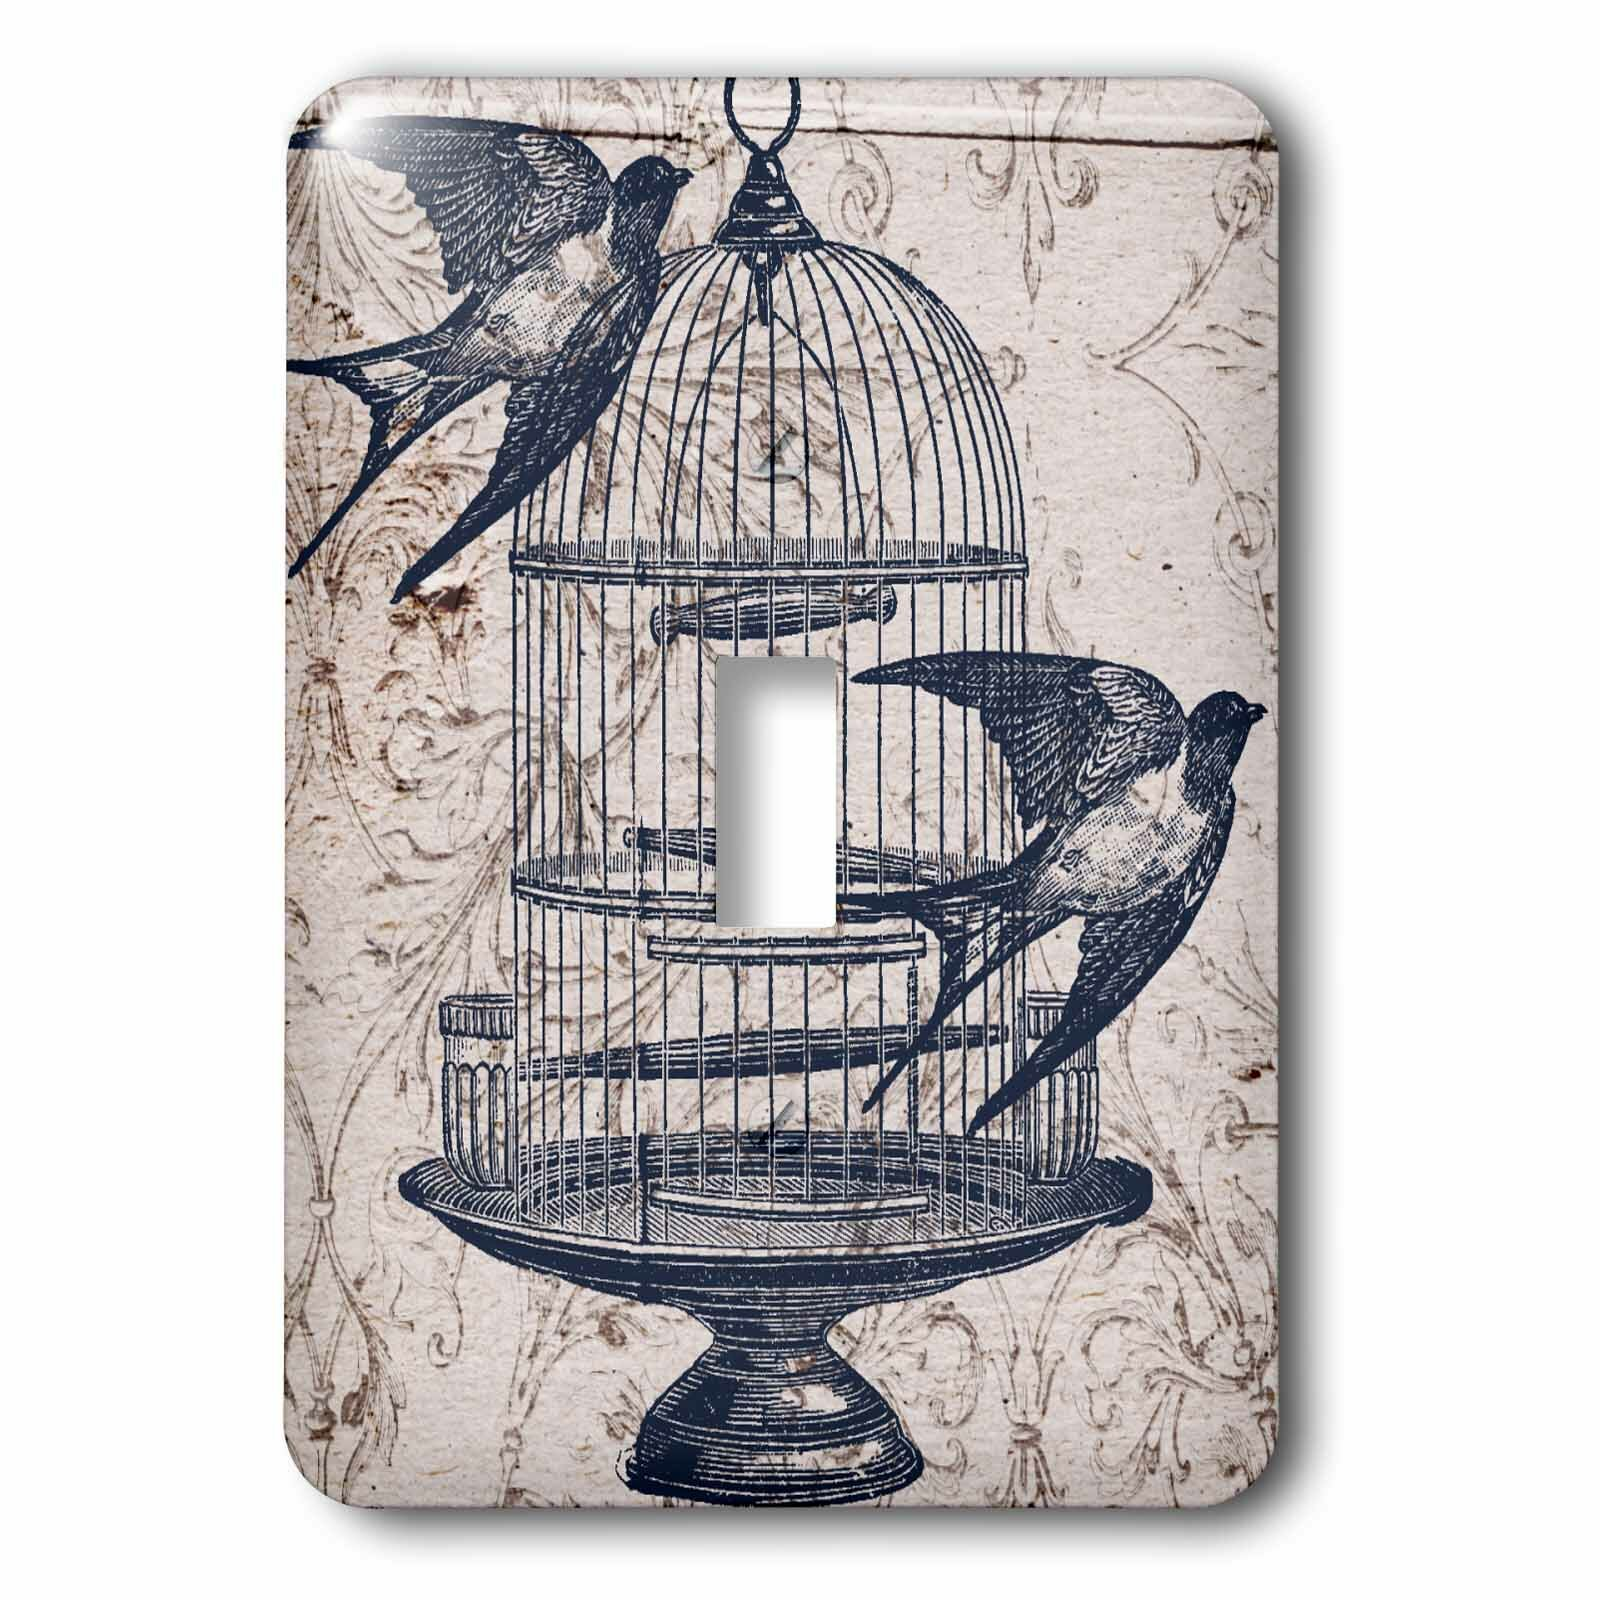 3drose Bird Cage Steampunk 1 Gang Toggle Light Switch Wall Plate Wayfair